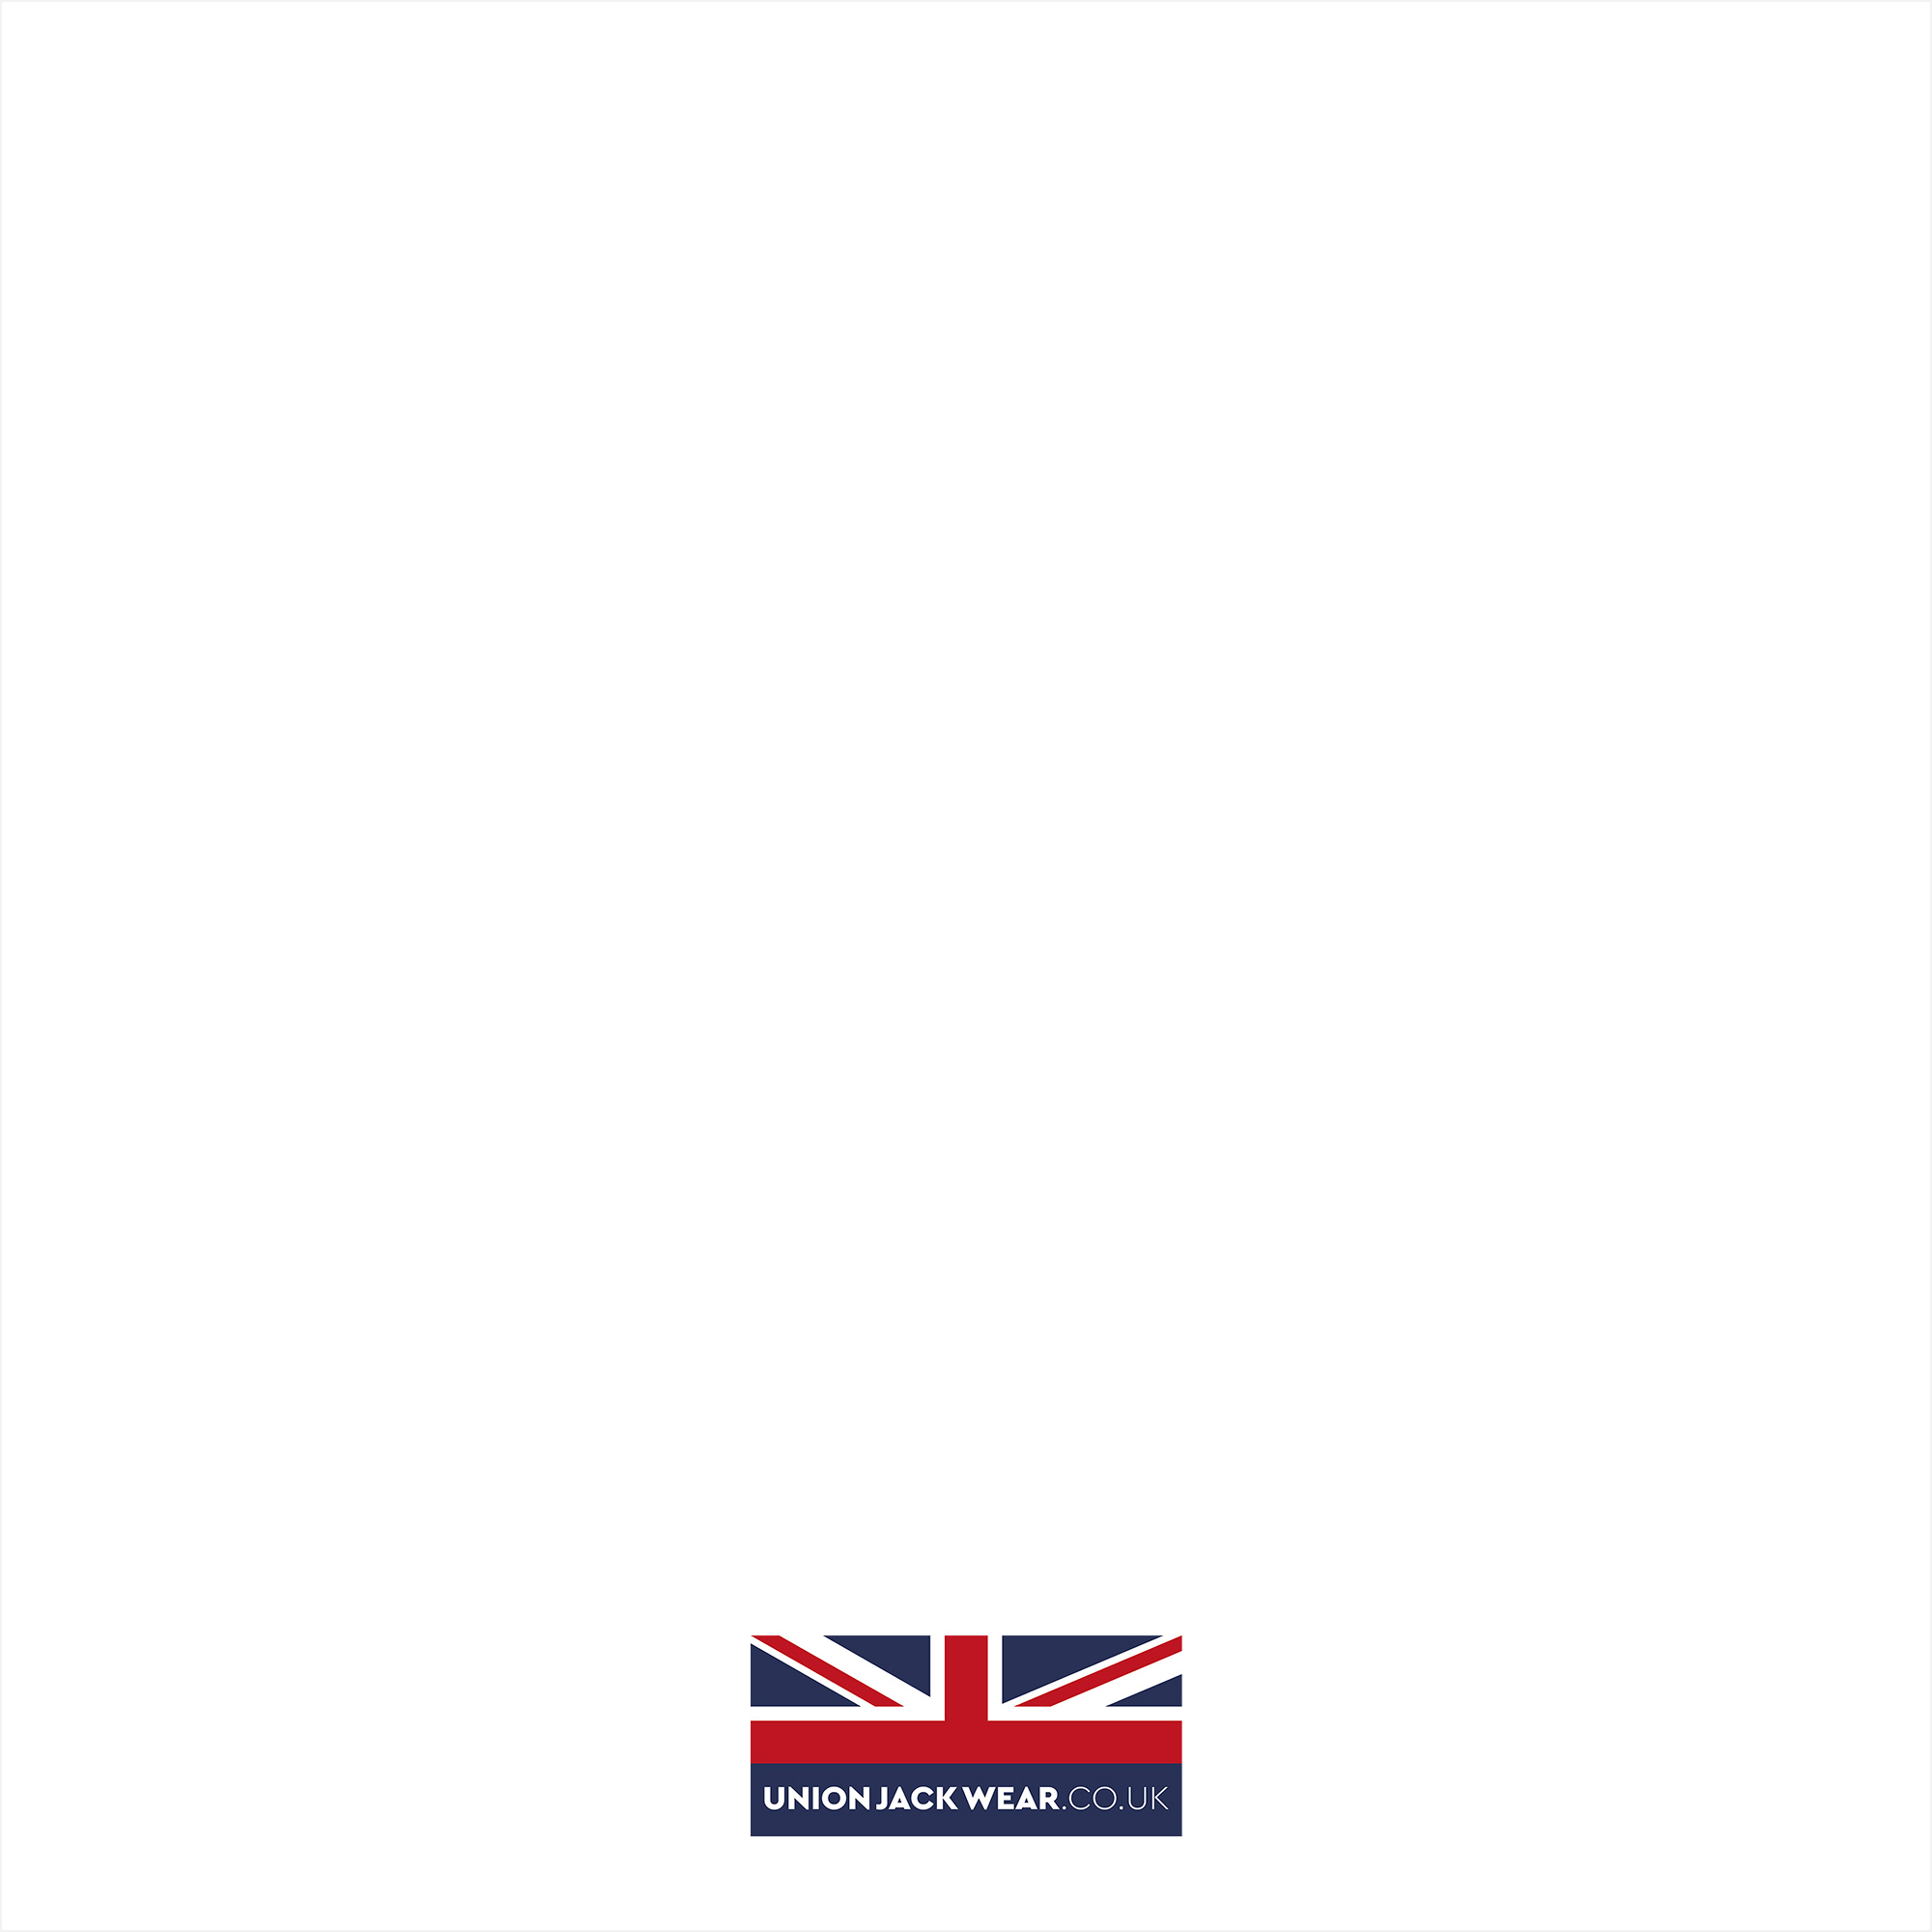 Union Jack Wear 20 Union Jack Wavy Flag Design Cardboard Cups